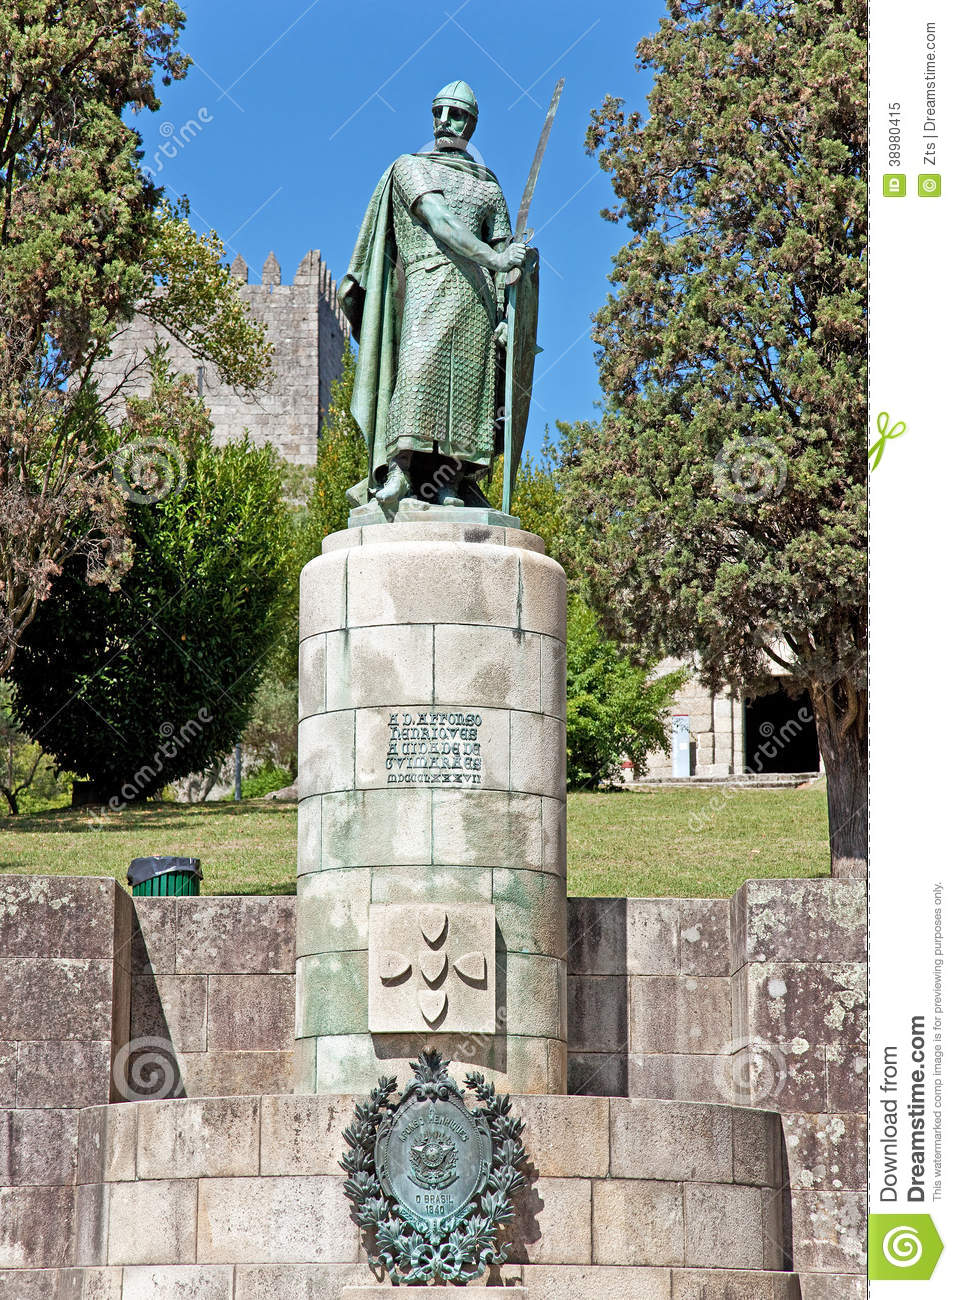 Statue Of King Dom Afonso Henriques In Guimaraes Stock Photo.